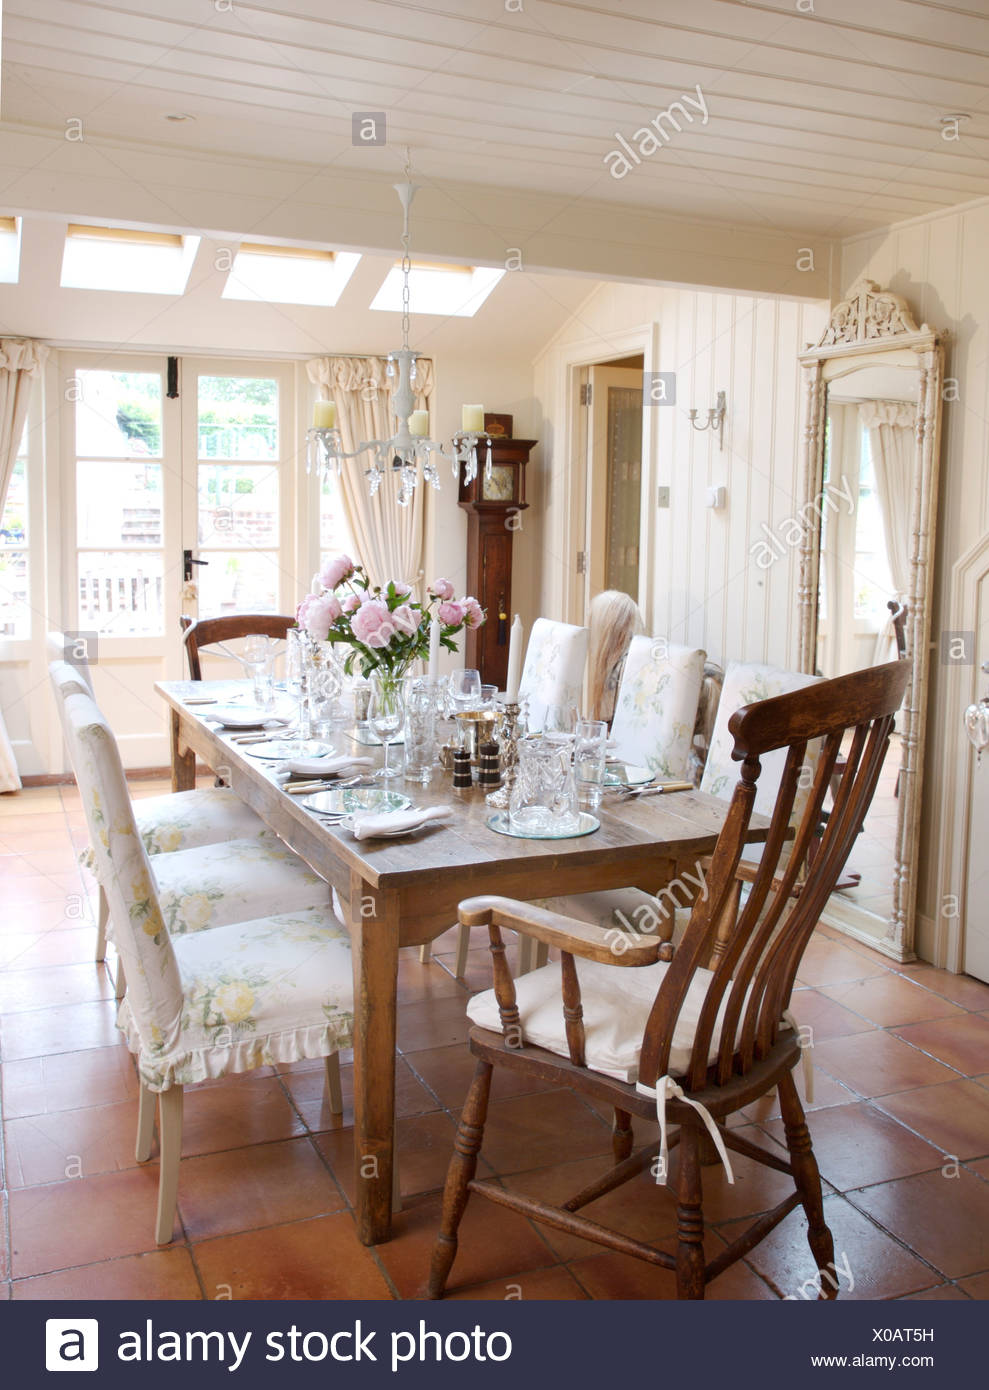 Antique Windsor Carver Chair And Chairs With Loose Covers At Simple Wooden  Table Set For Lunch For Eight In Country Dining Room